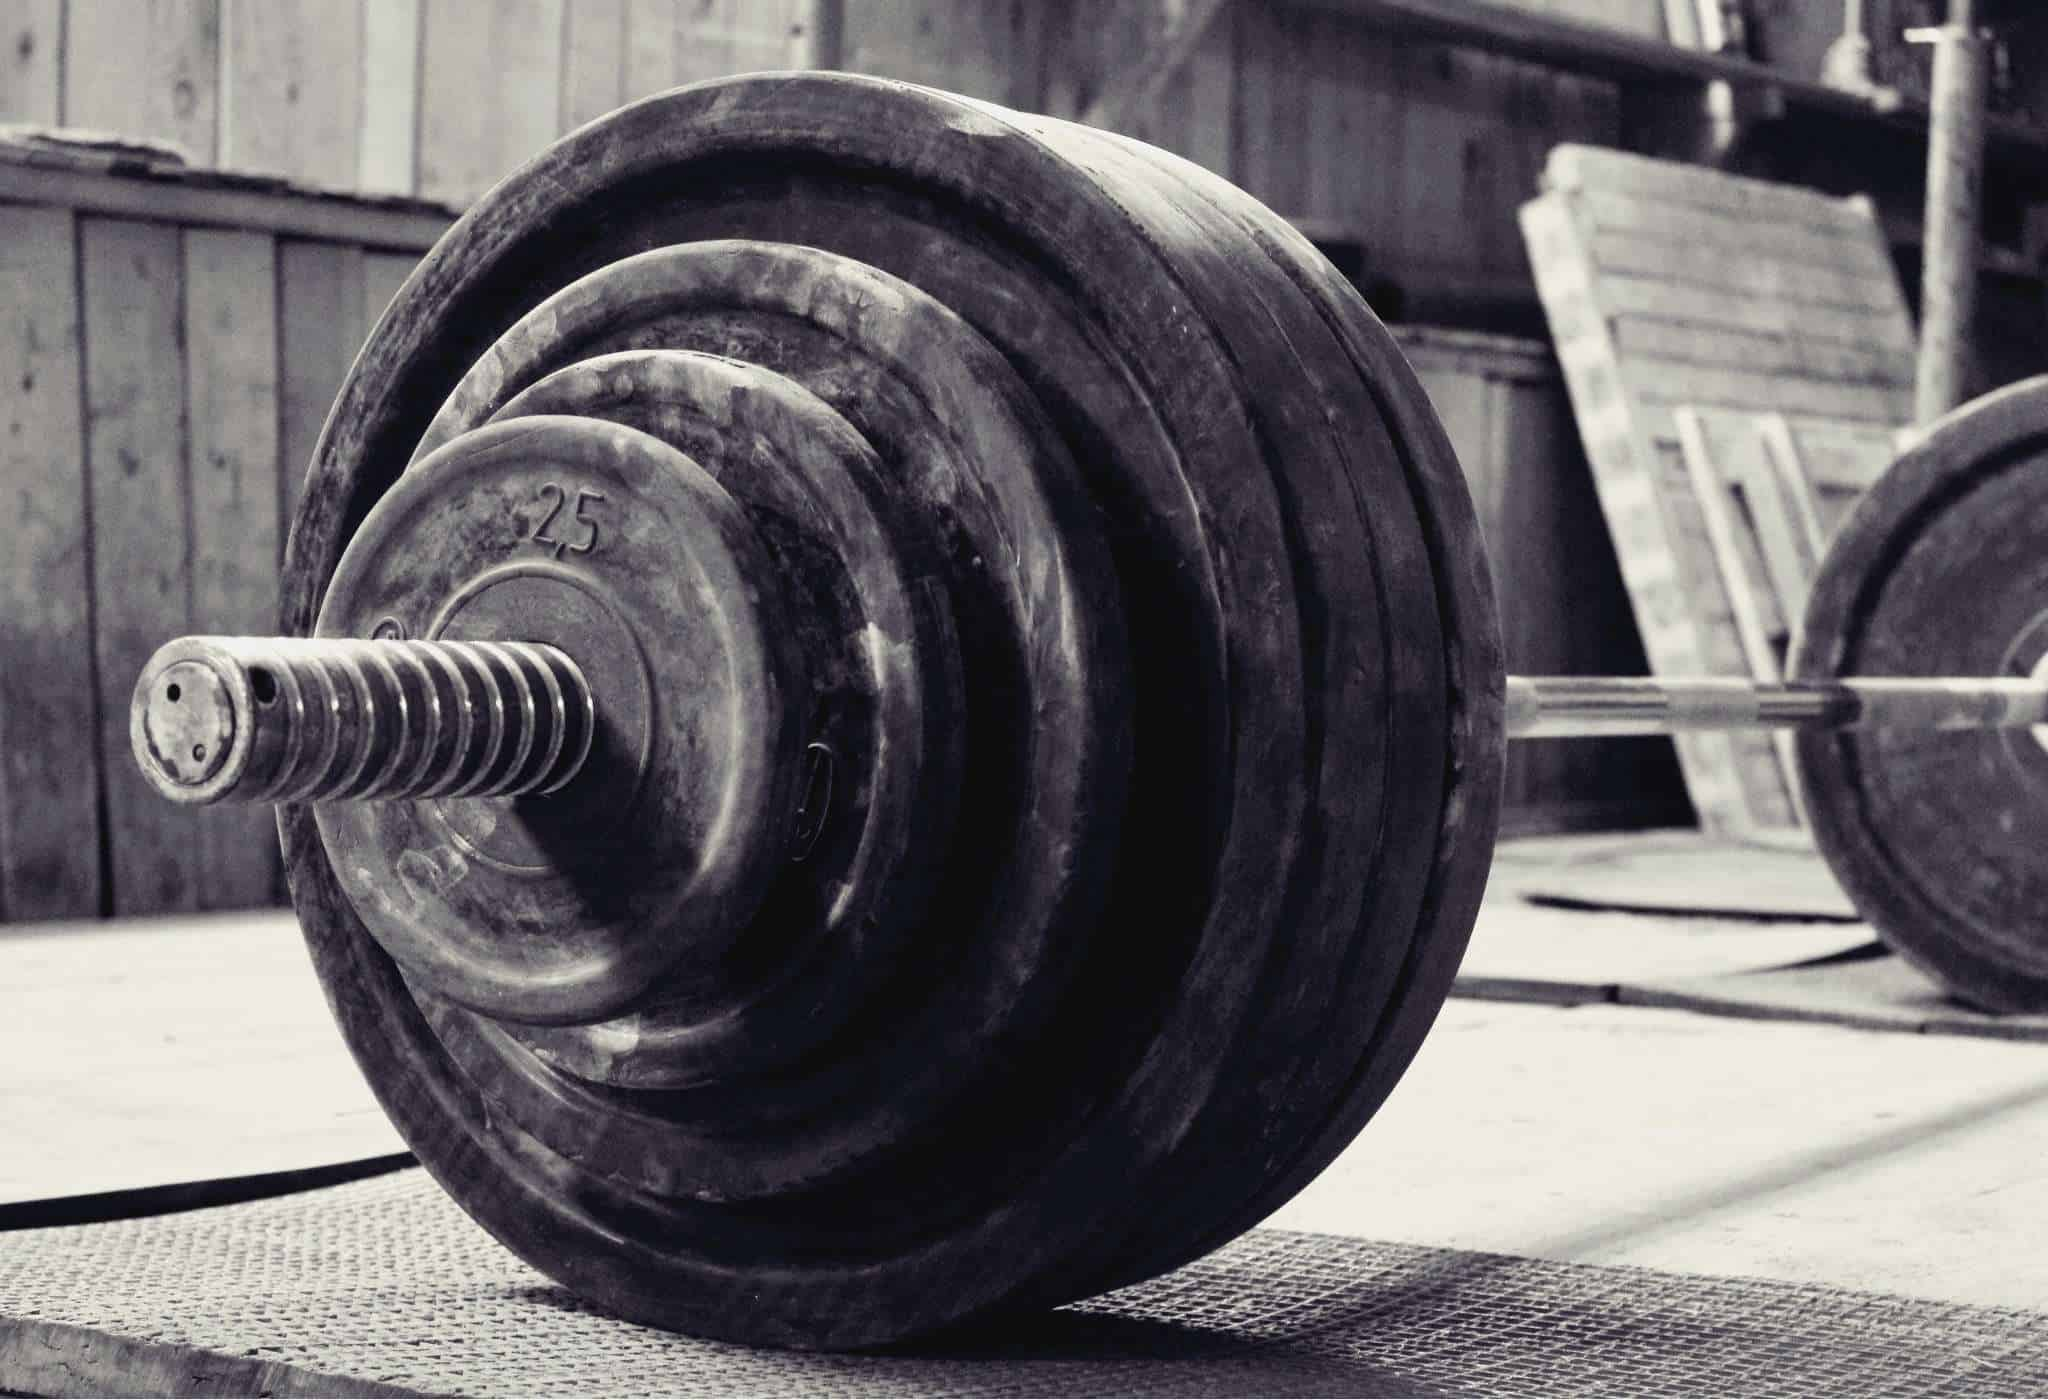 lifting weight is an advice i would give younger self